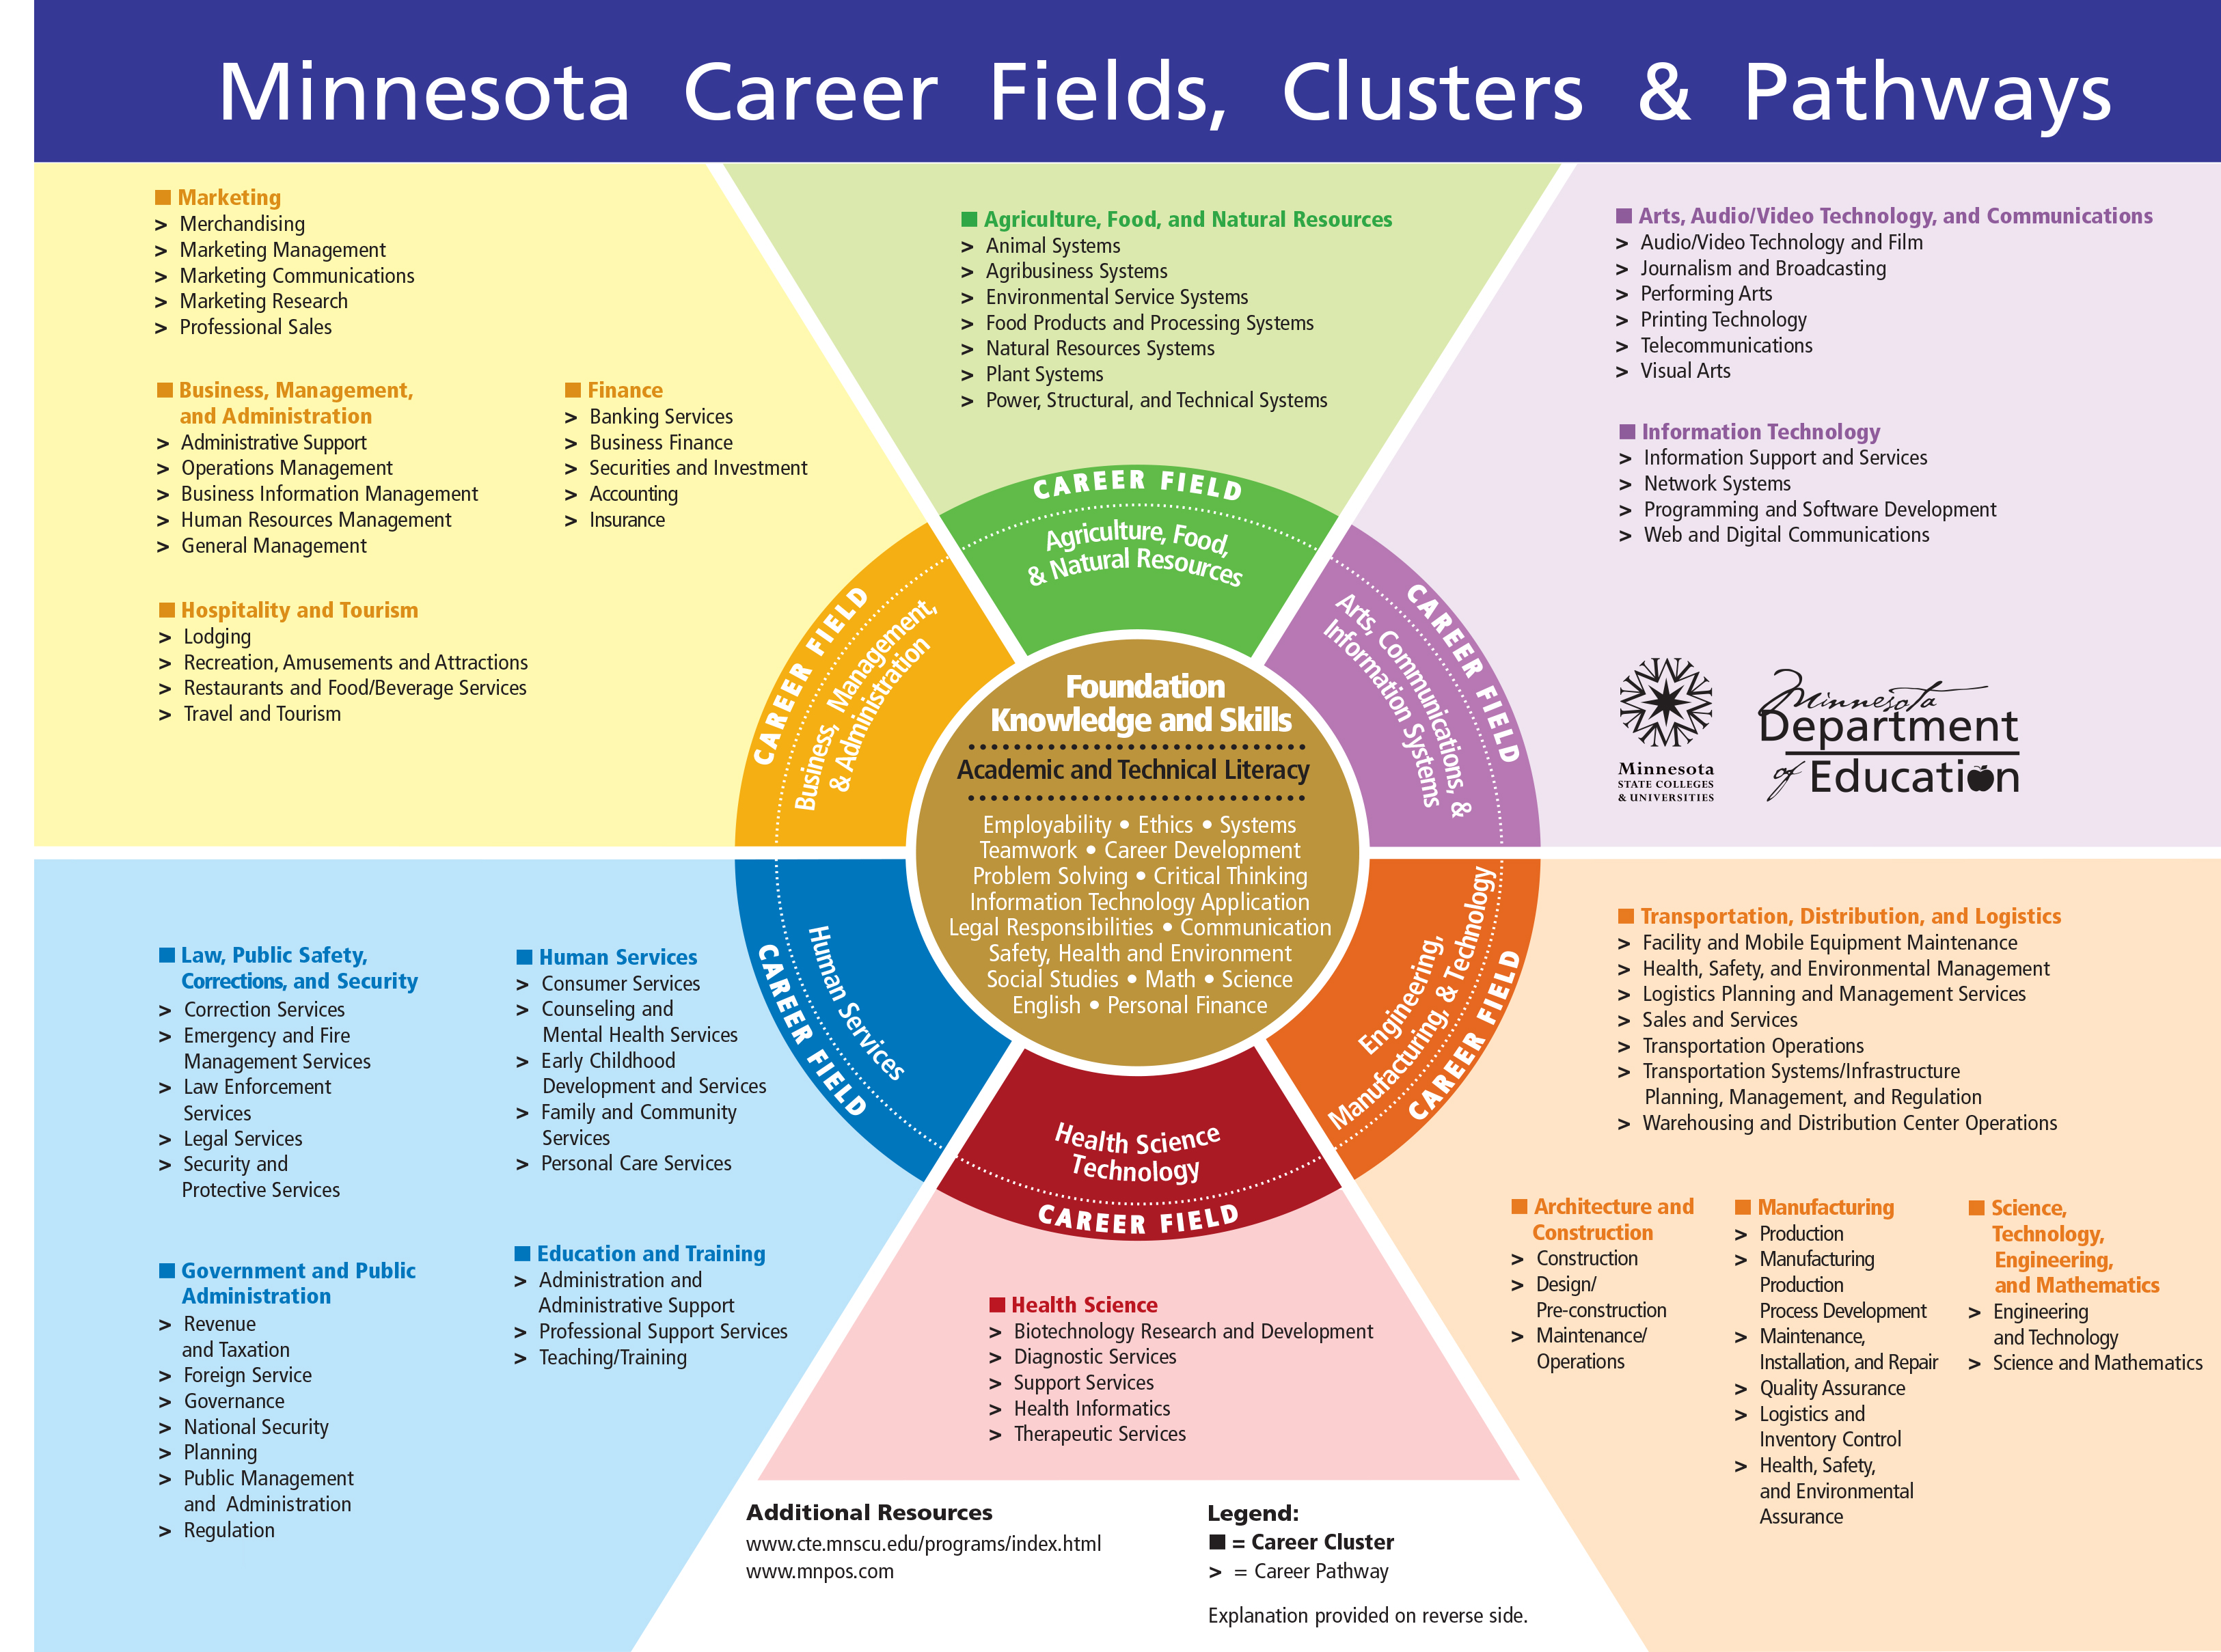 MN Career Fields, Clusters, & Pathways Chart